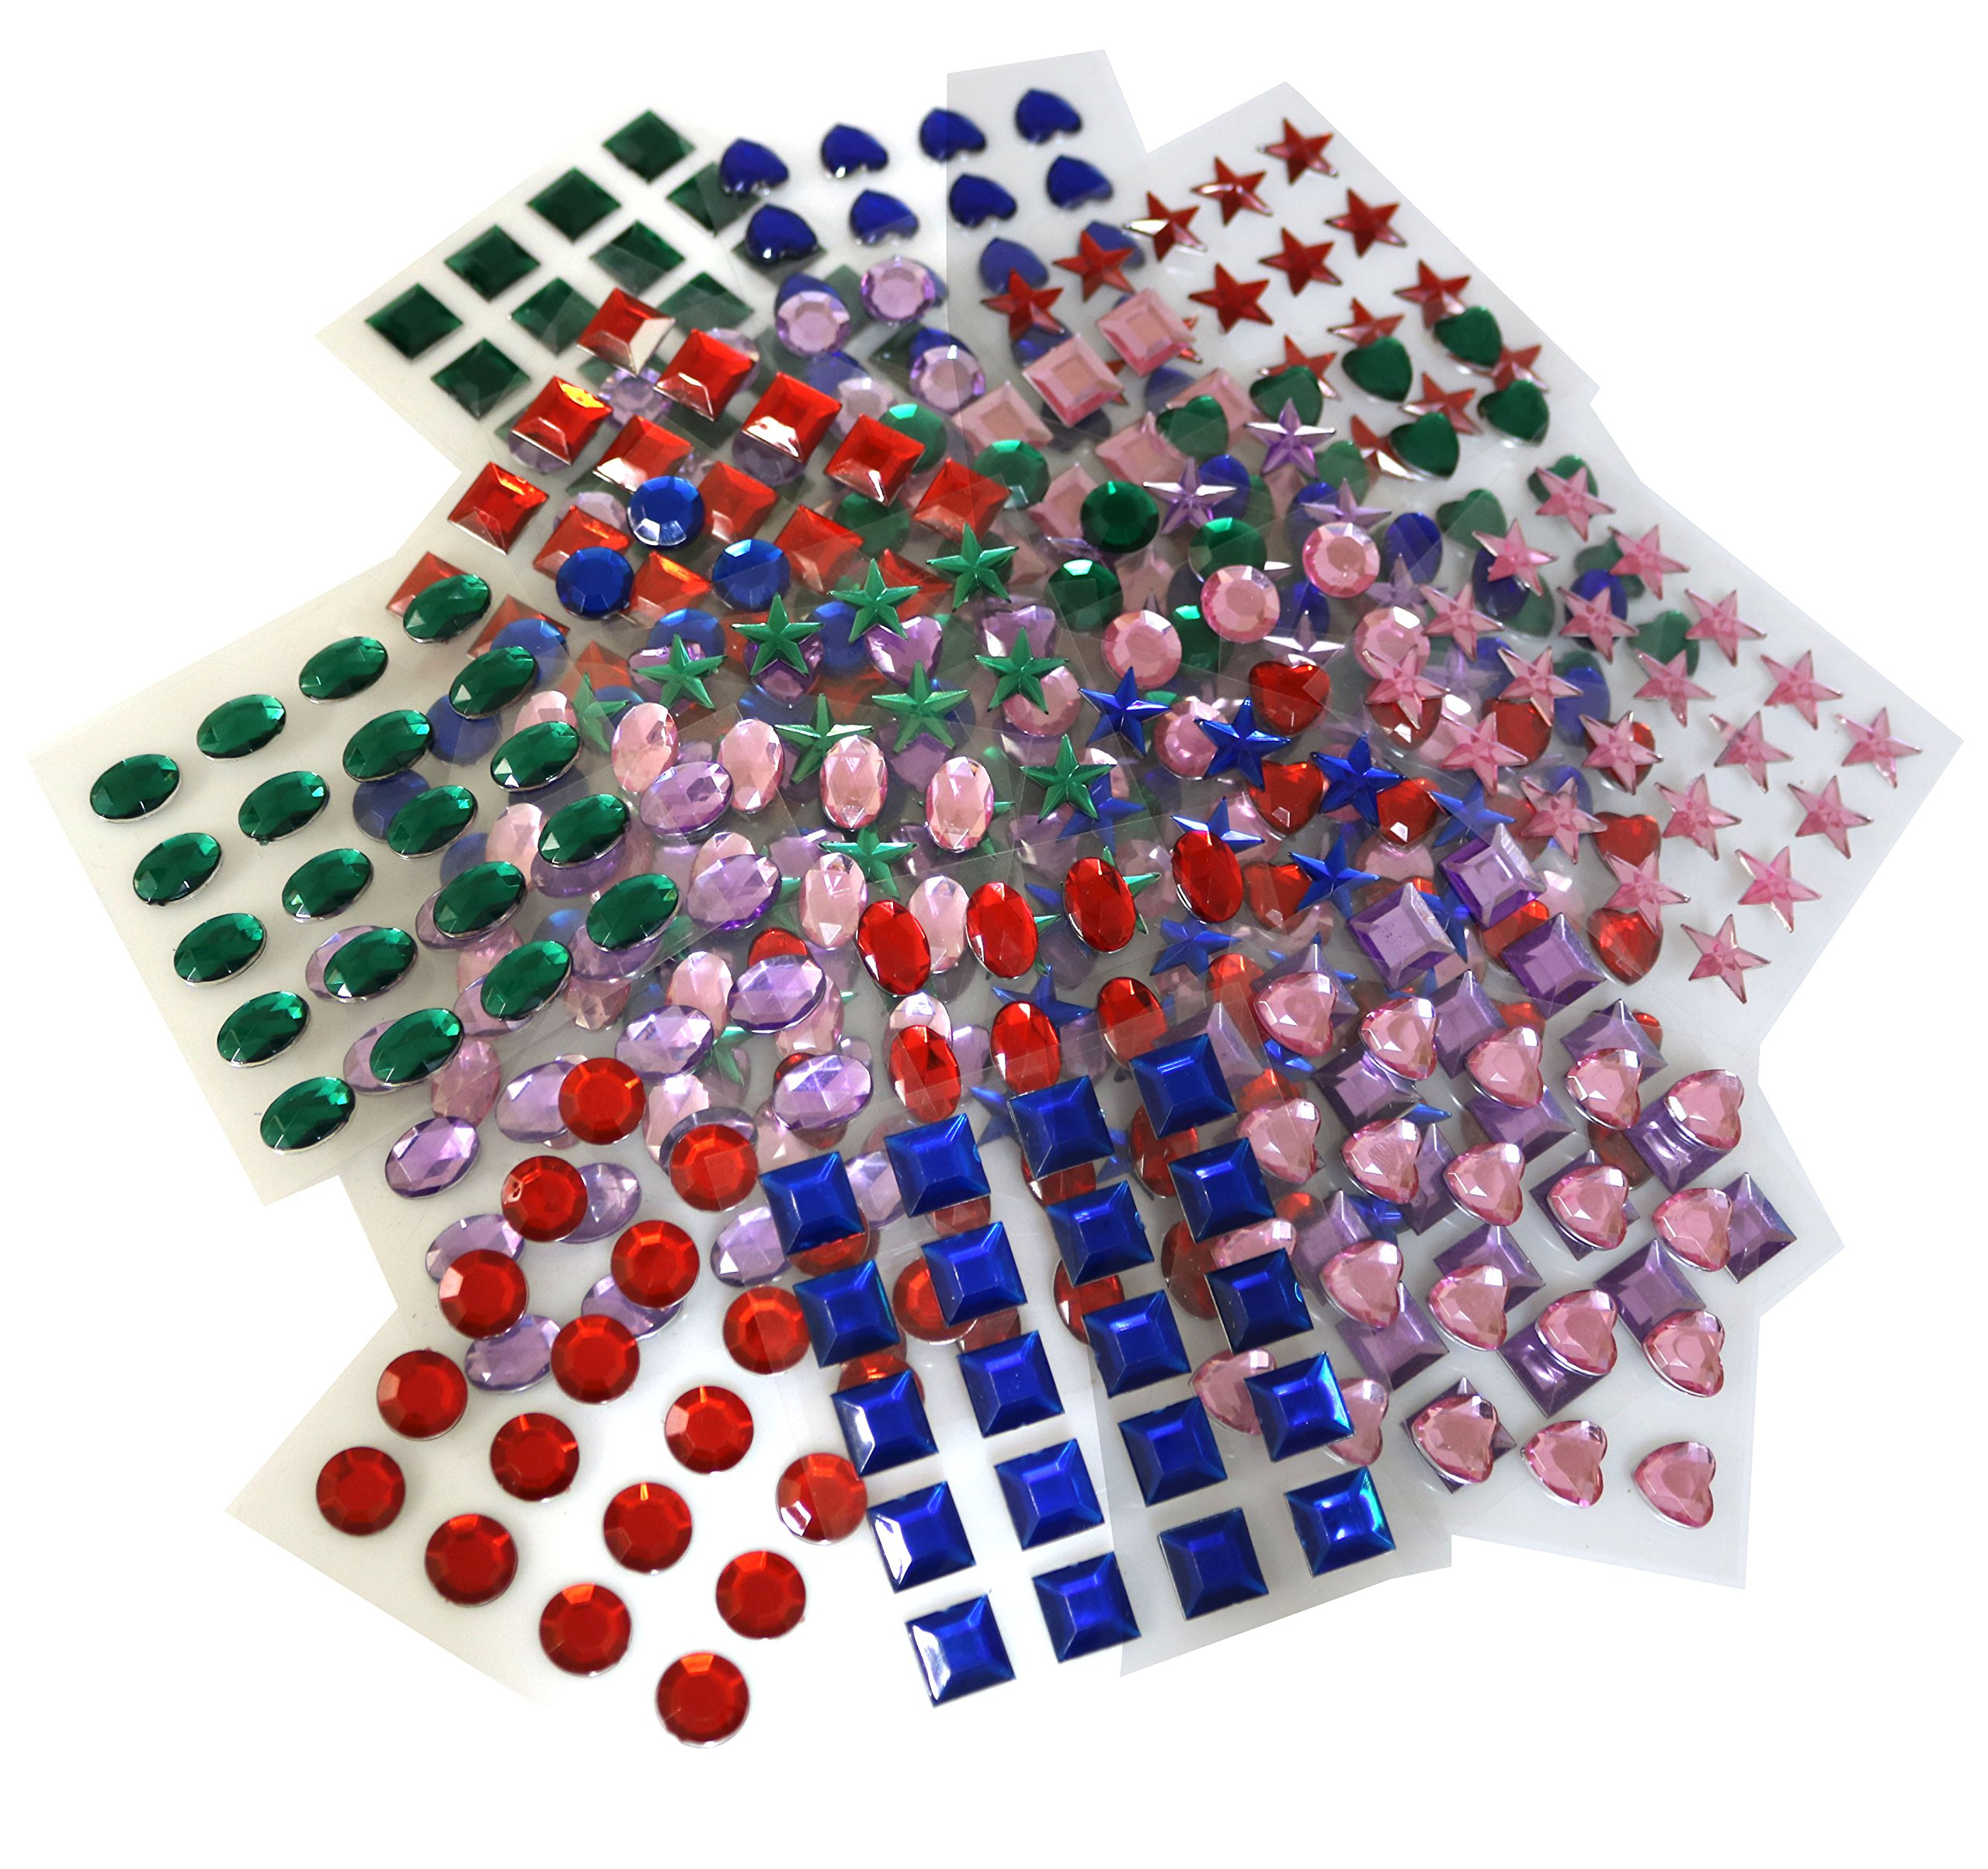 Arts and crafts jewels - An Assortment Of Self Adhesive Stick On Arts And Crafts Jewels Gemstones Come In Hearts Stars Circles Ovals And Squares 500 Pcs